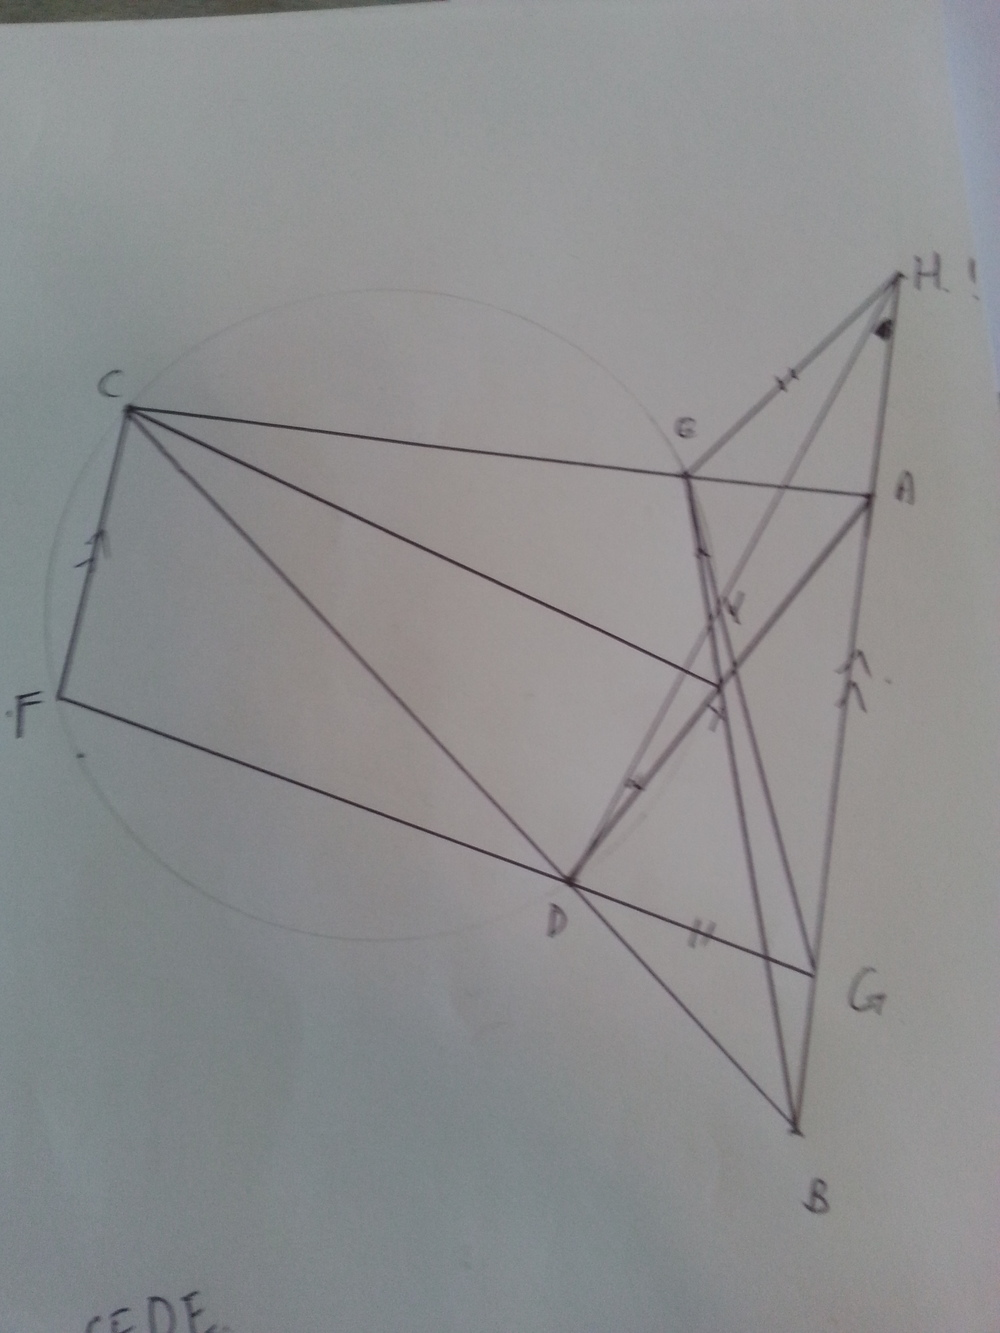 What the... the diagram required to solve Question 8... apparently we had to prove that the intersection of GB and DA connected to point C bisects the angle DCG